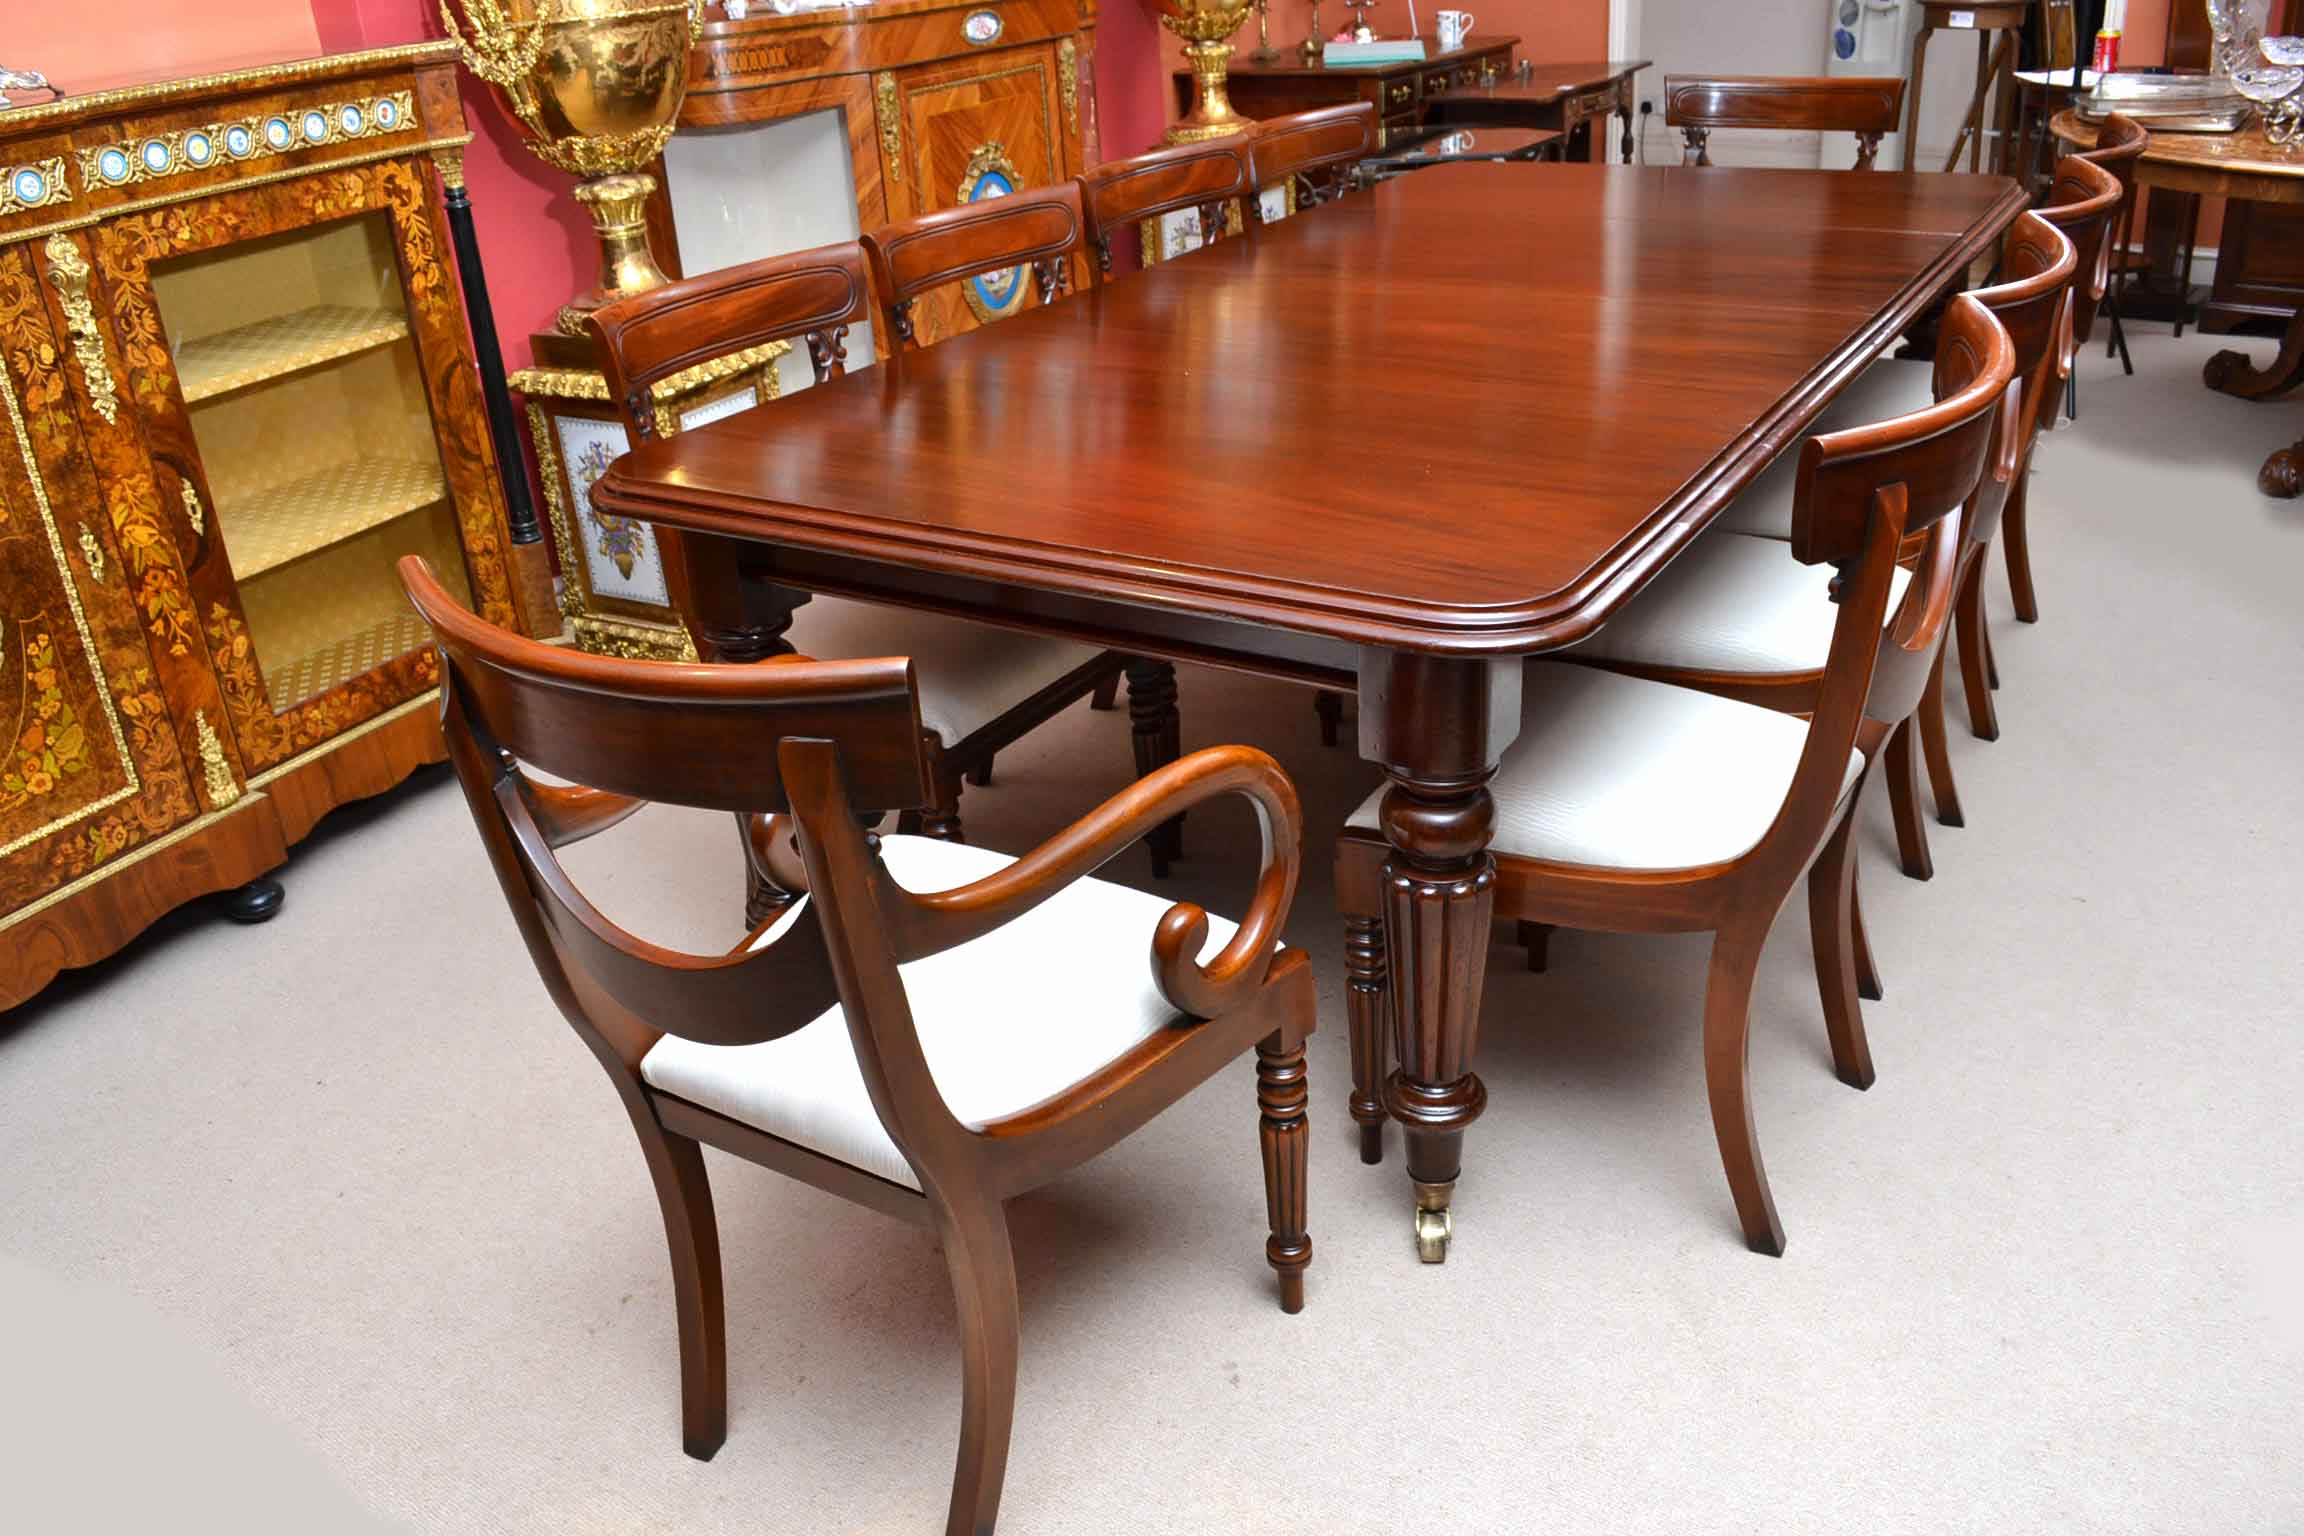 antique victorian 8ft mahogany dining table 10 chairs ref no 04108a regent antiques. Black Bedroom Furniture Sets. Home Design Ideas